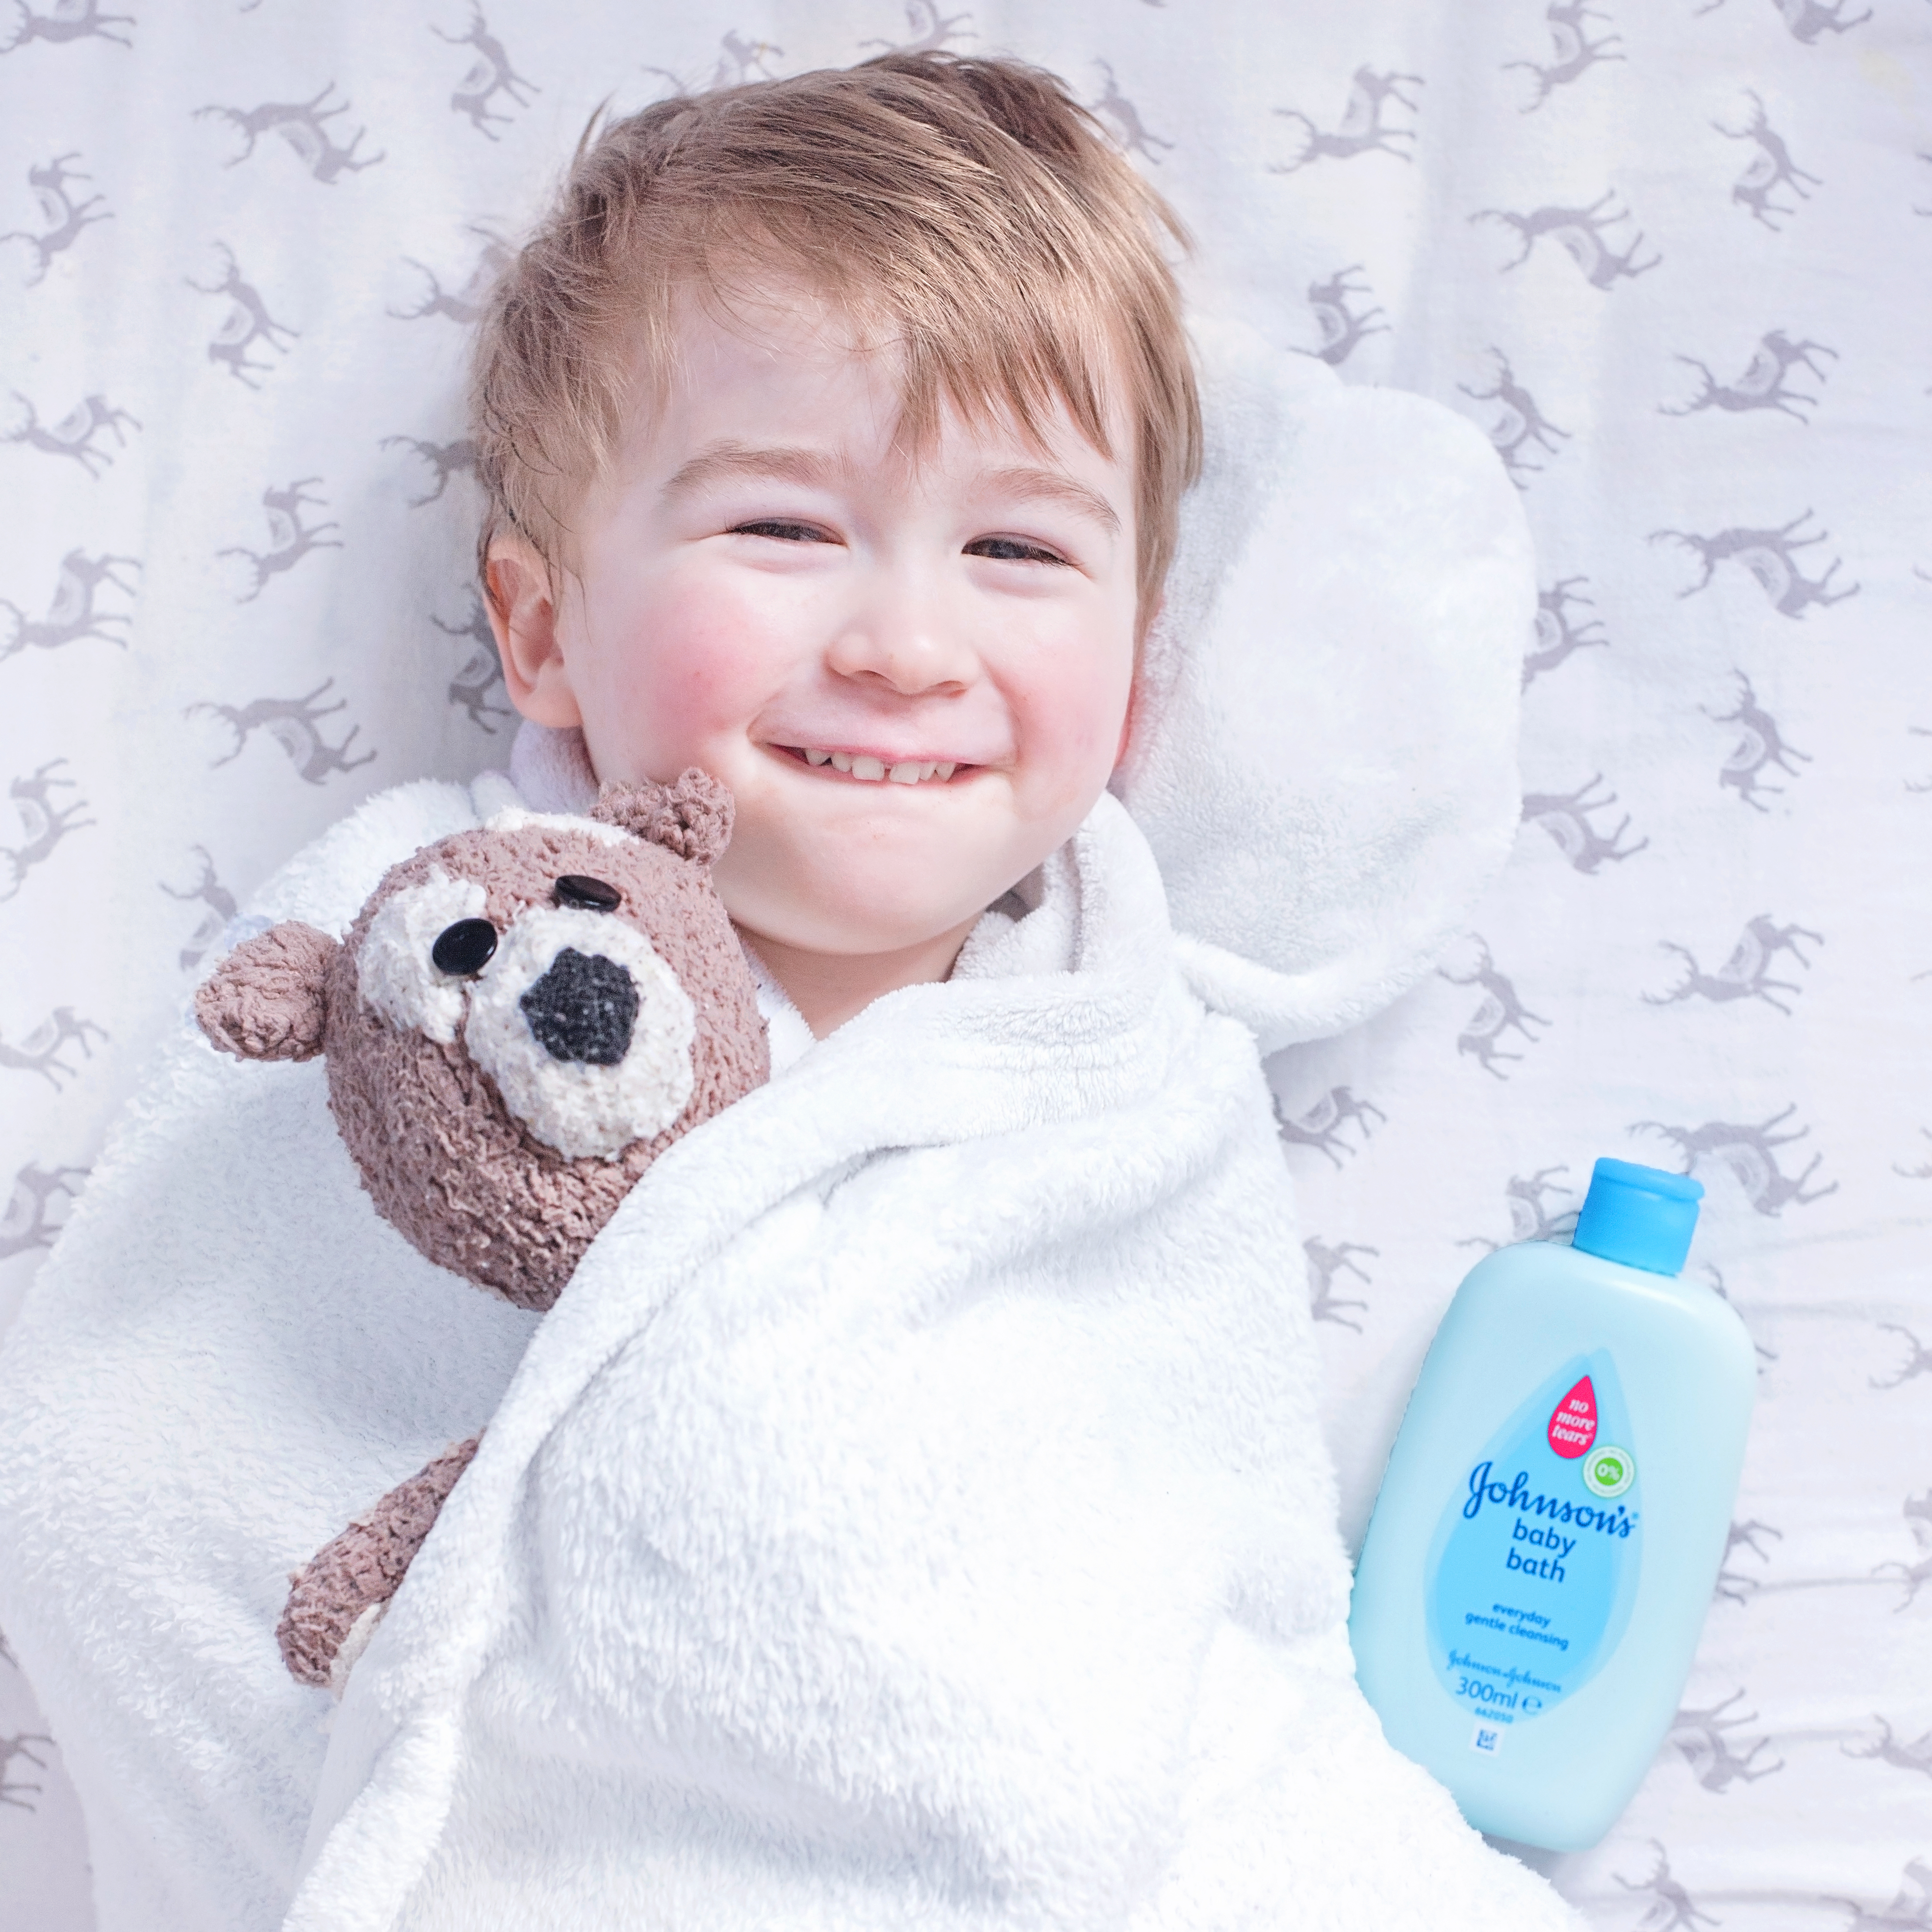 Johnson's Baby Ambassador